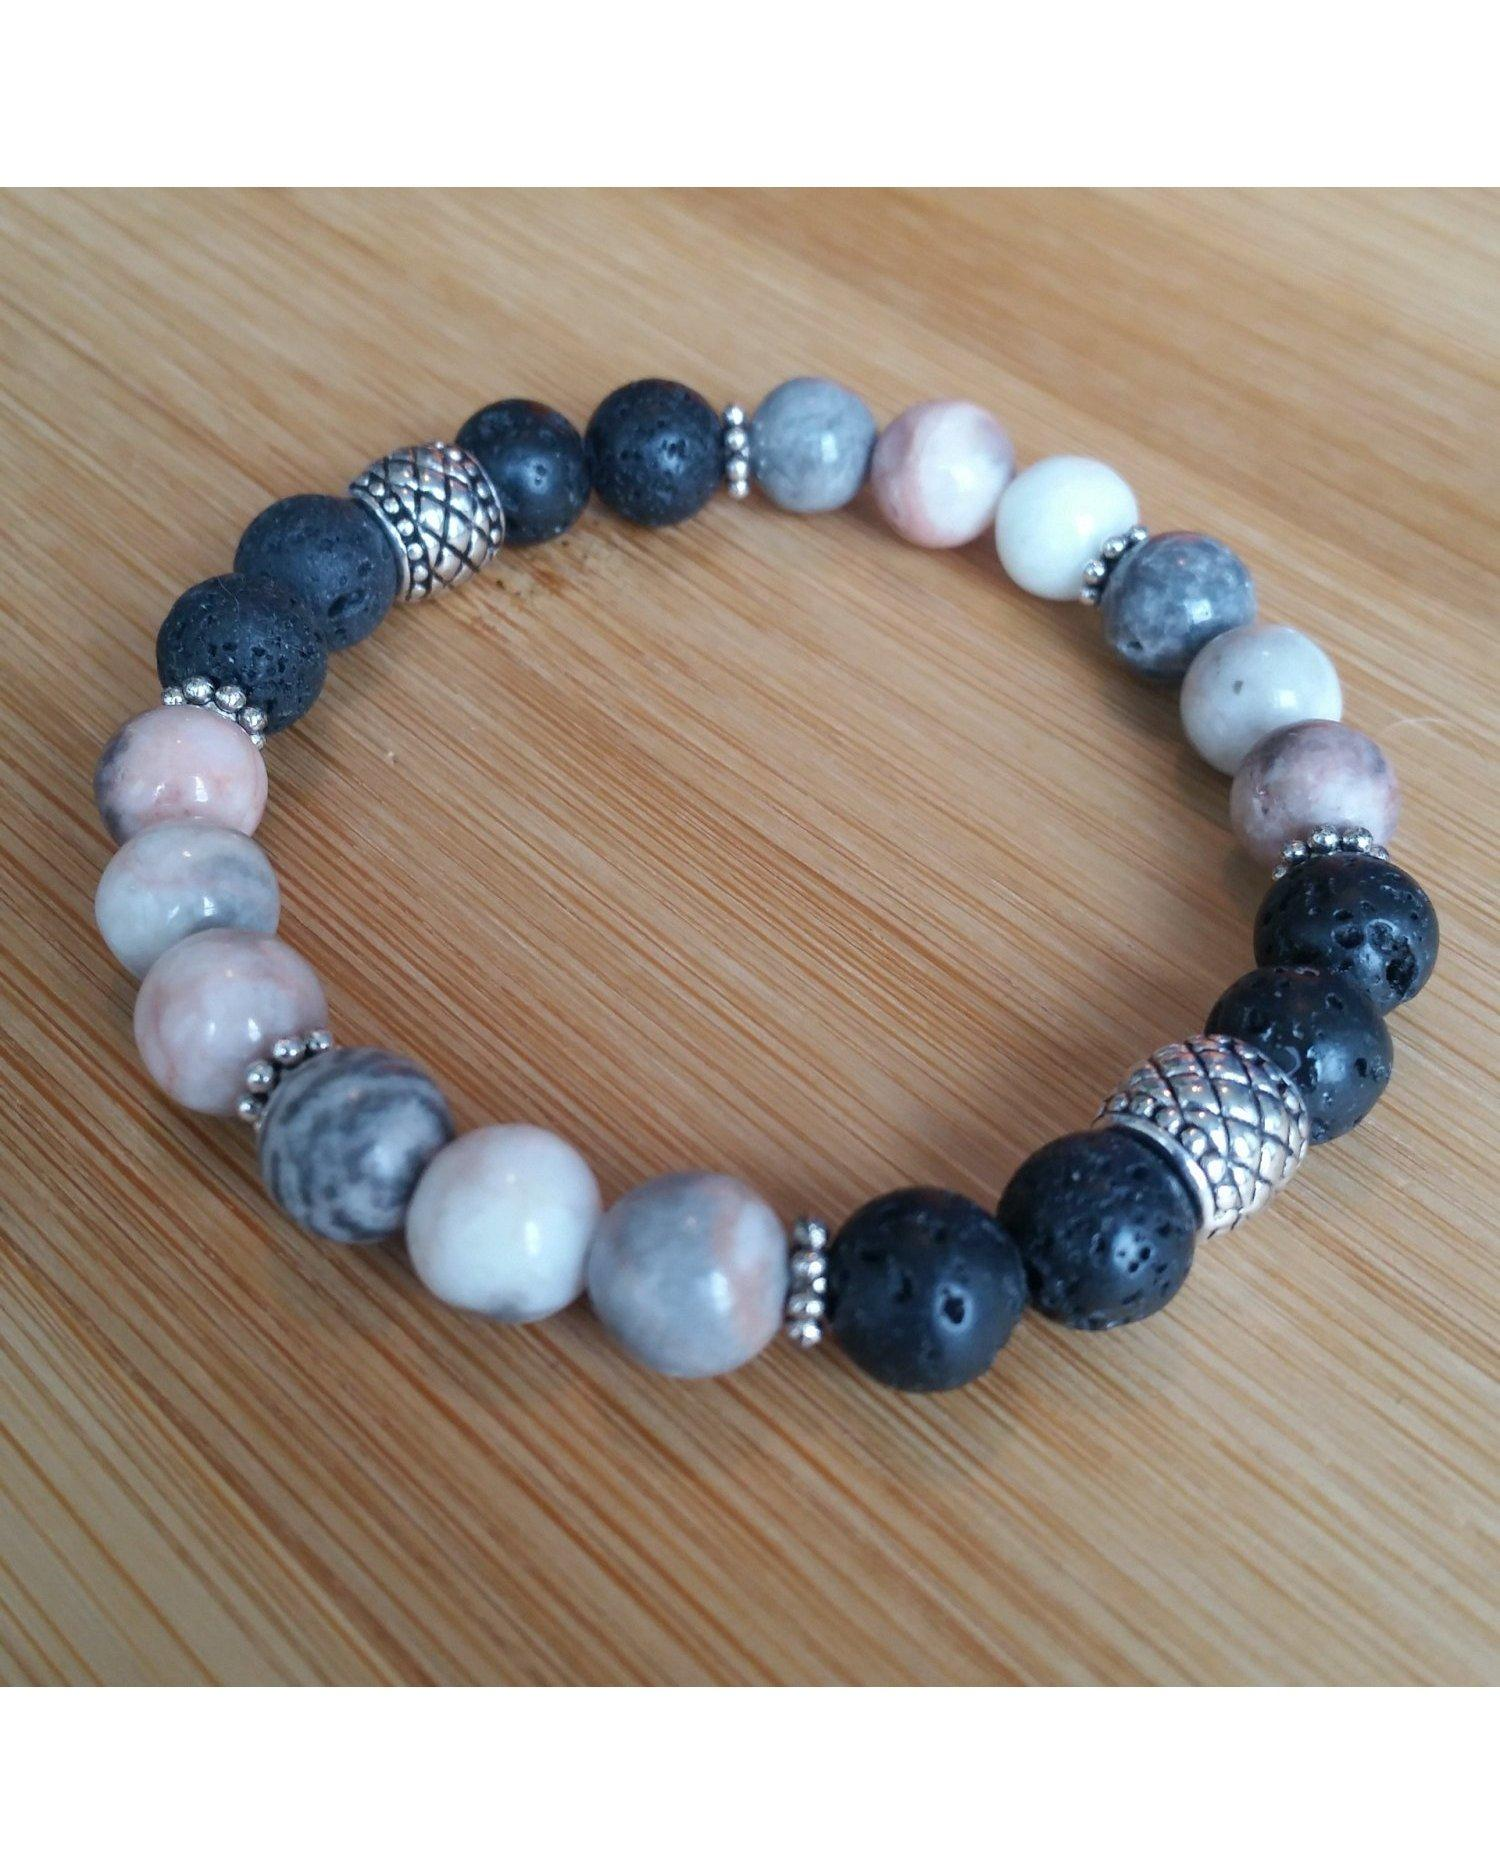 "Pink and Gray Mixed Color Zebra Jasper & Lava Rock 8mm Bead 7"" Size Essential Oil Diffuser Stretch Bracelet P053 - Essentially Elegant"